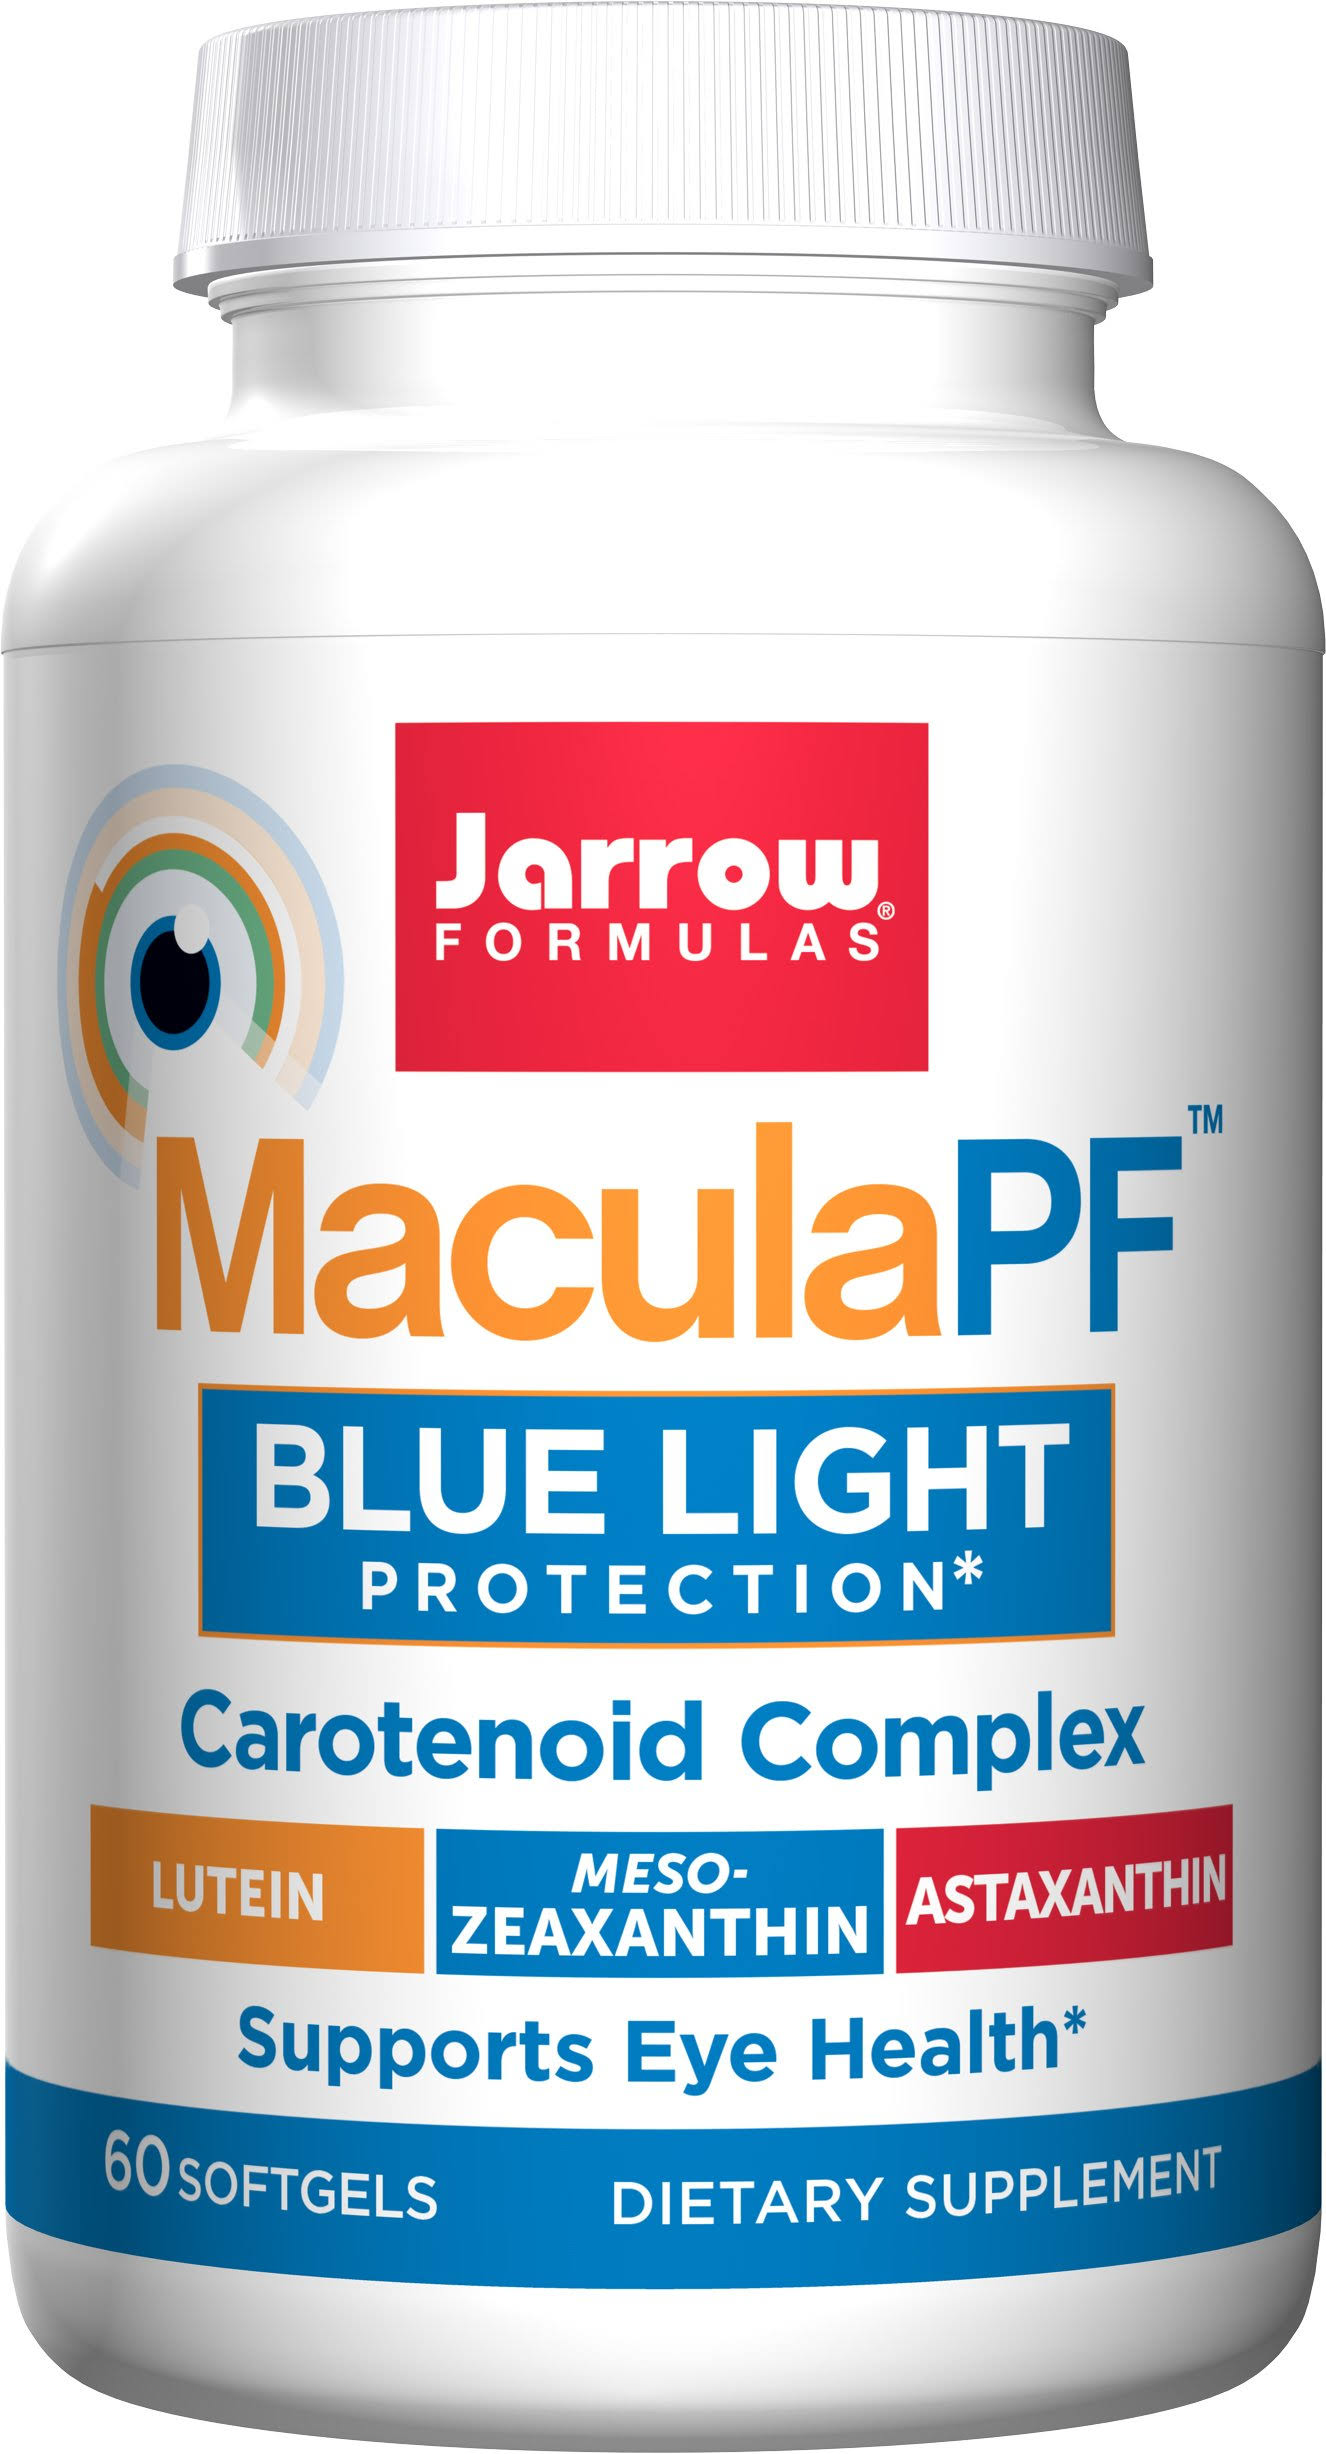 Jarrow Formulas MaculaPF - 60 Softgel